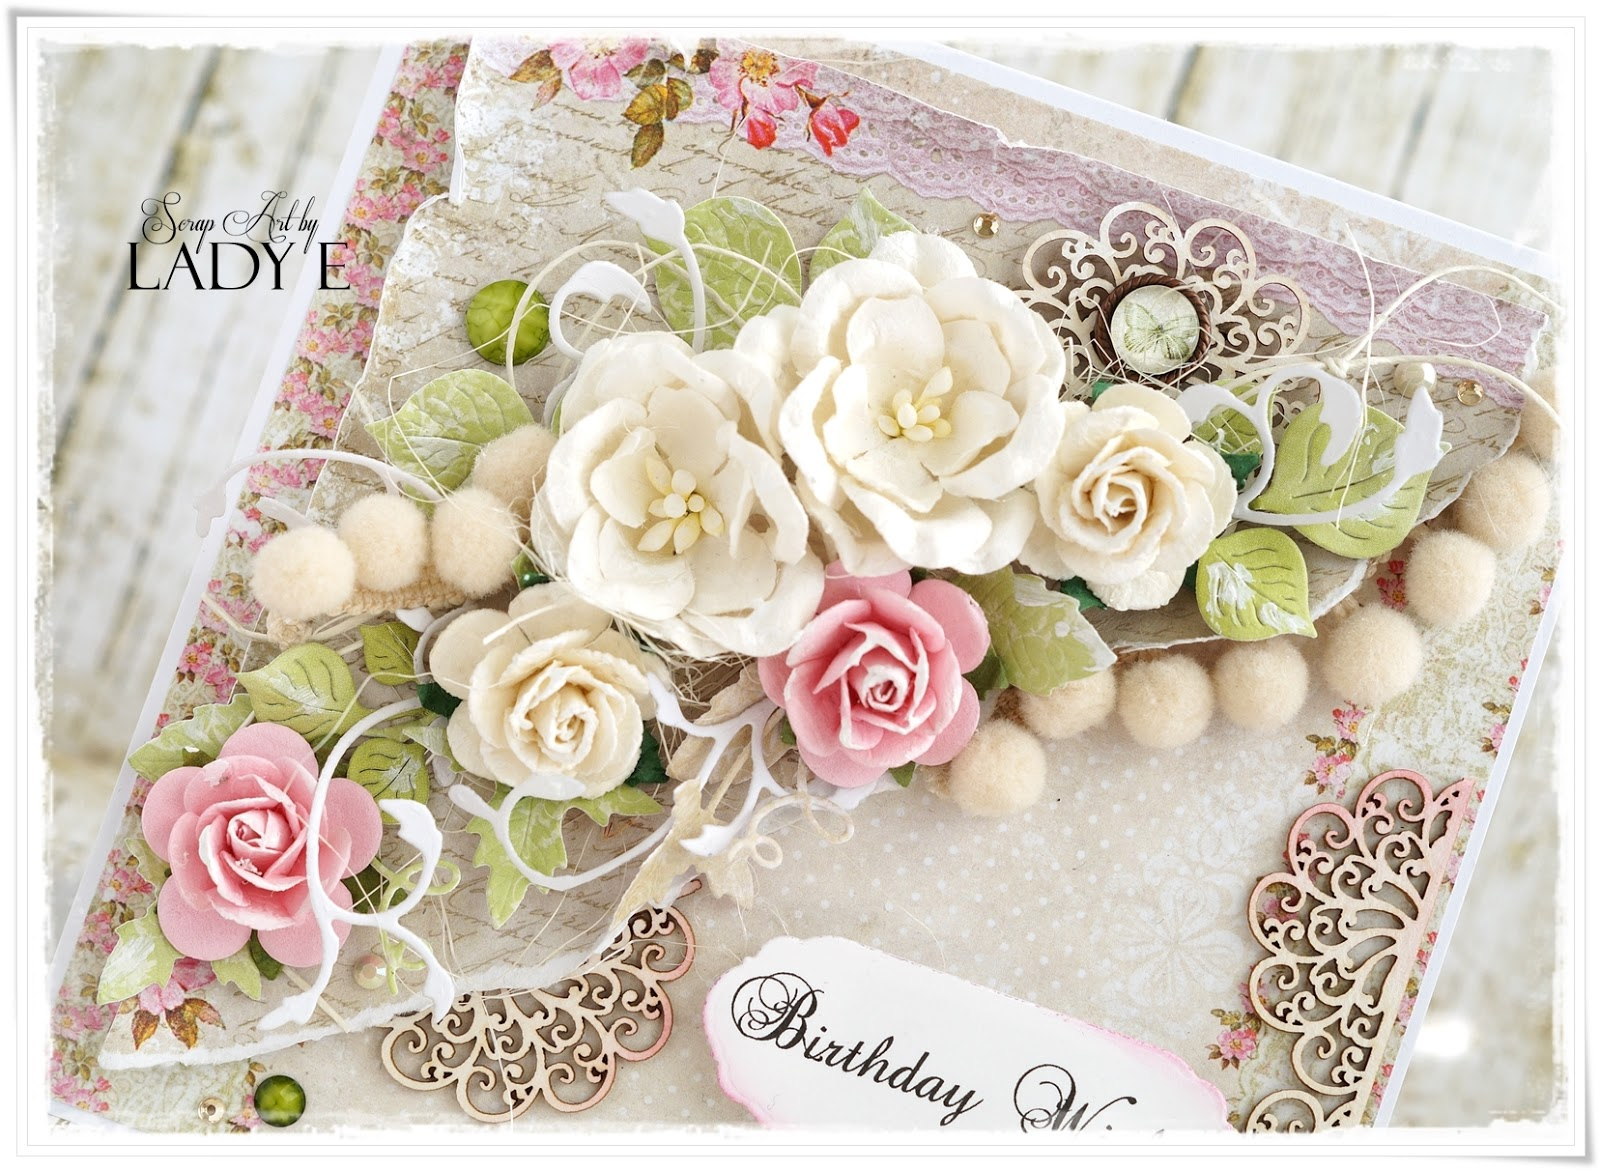 Lemoncraft house of roses on birthday card scrap art by lady e all flowers chipboards and pearls are from scrap craft izmirmasajfo